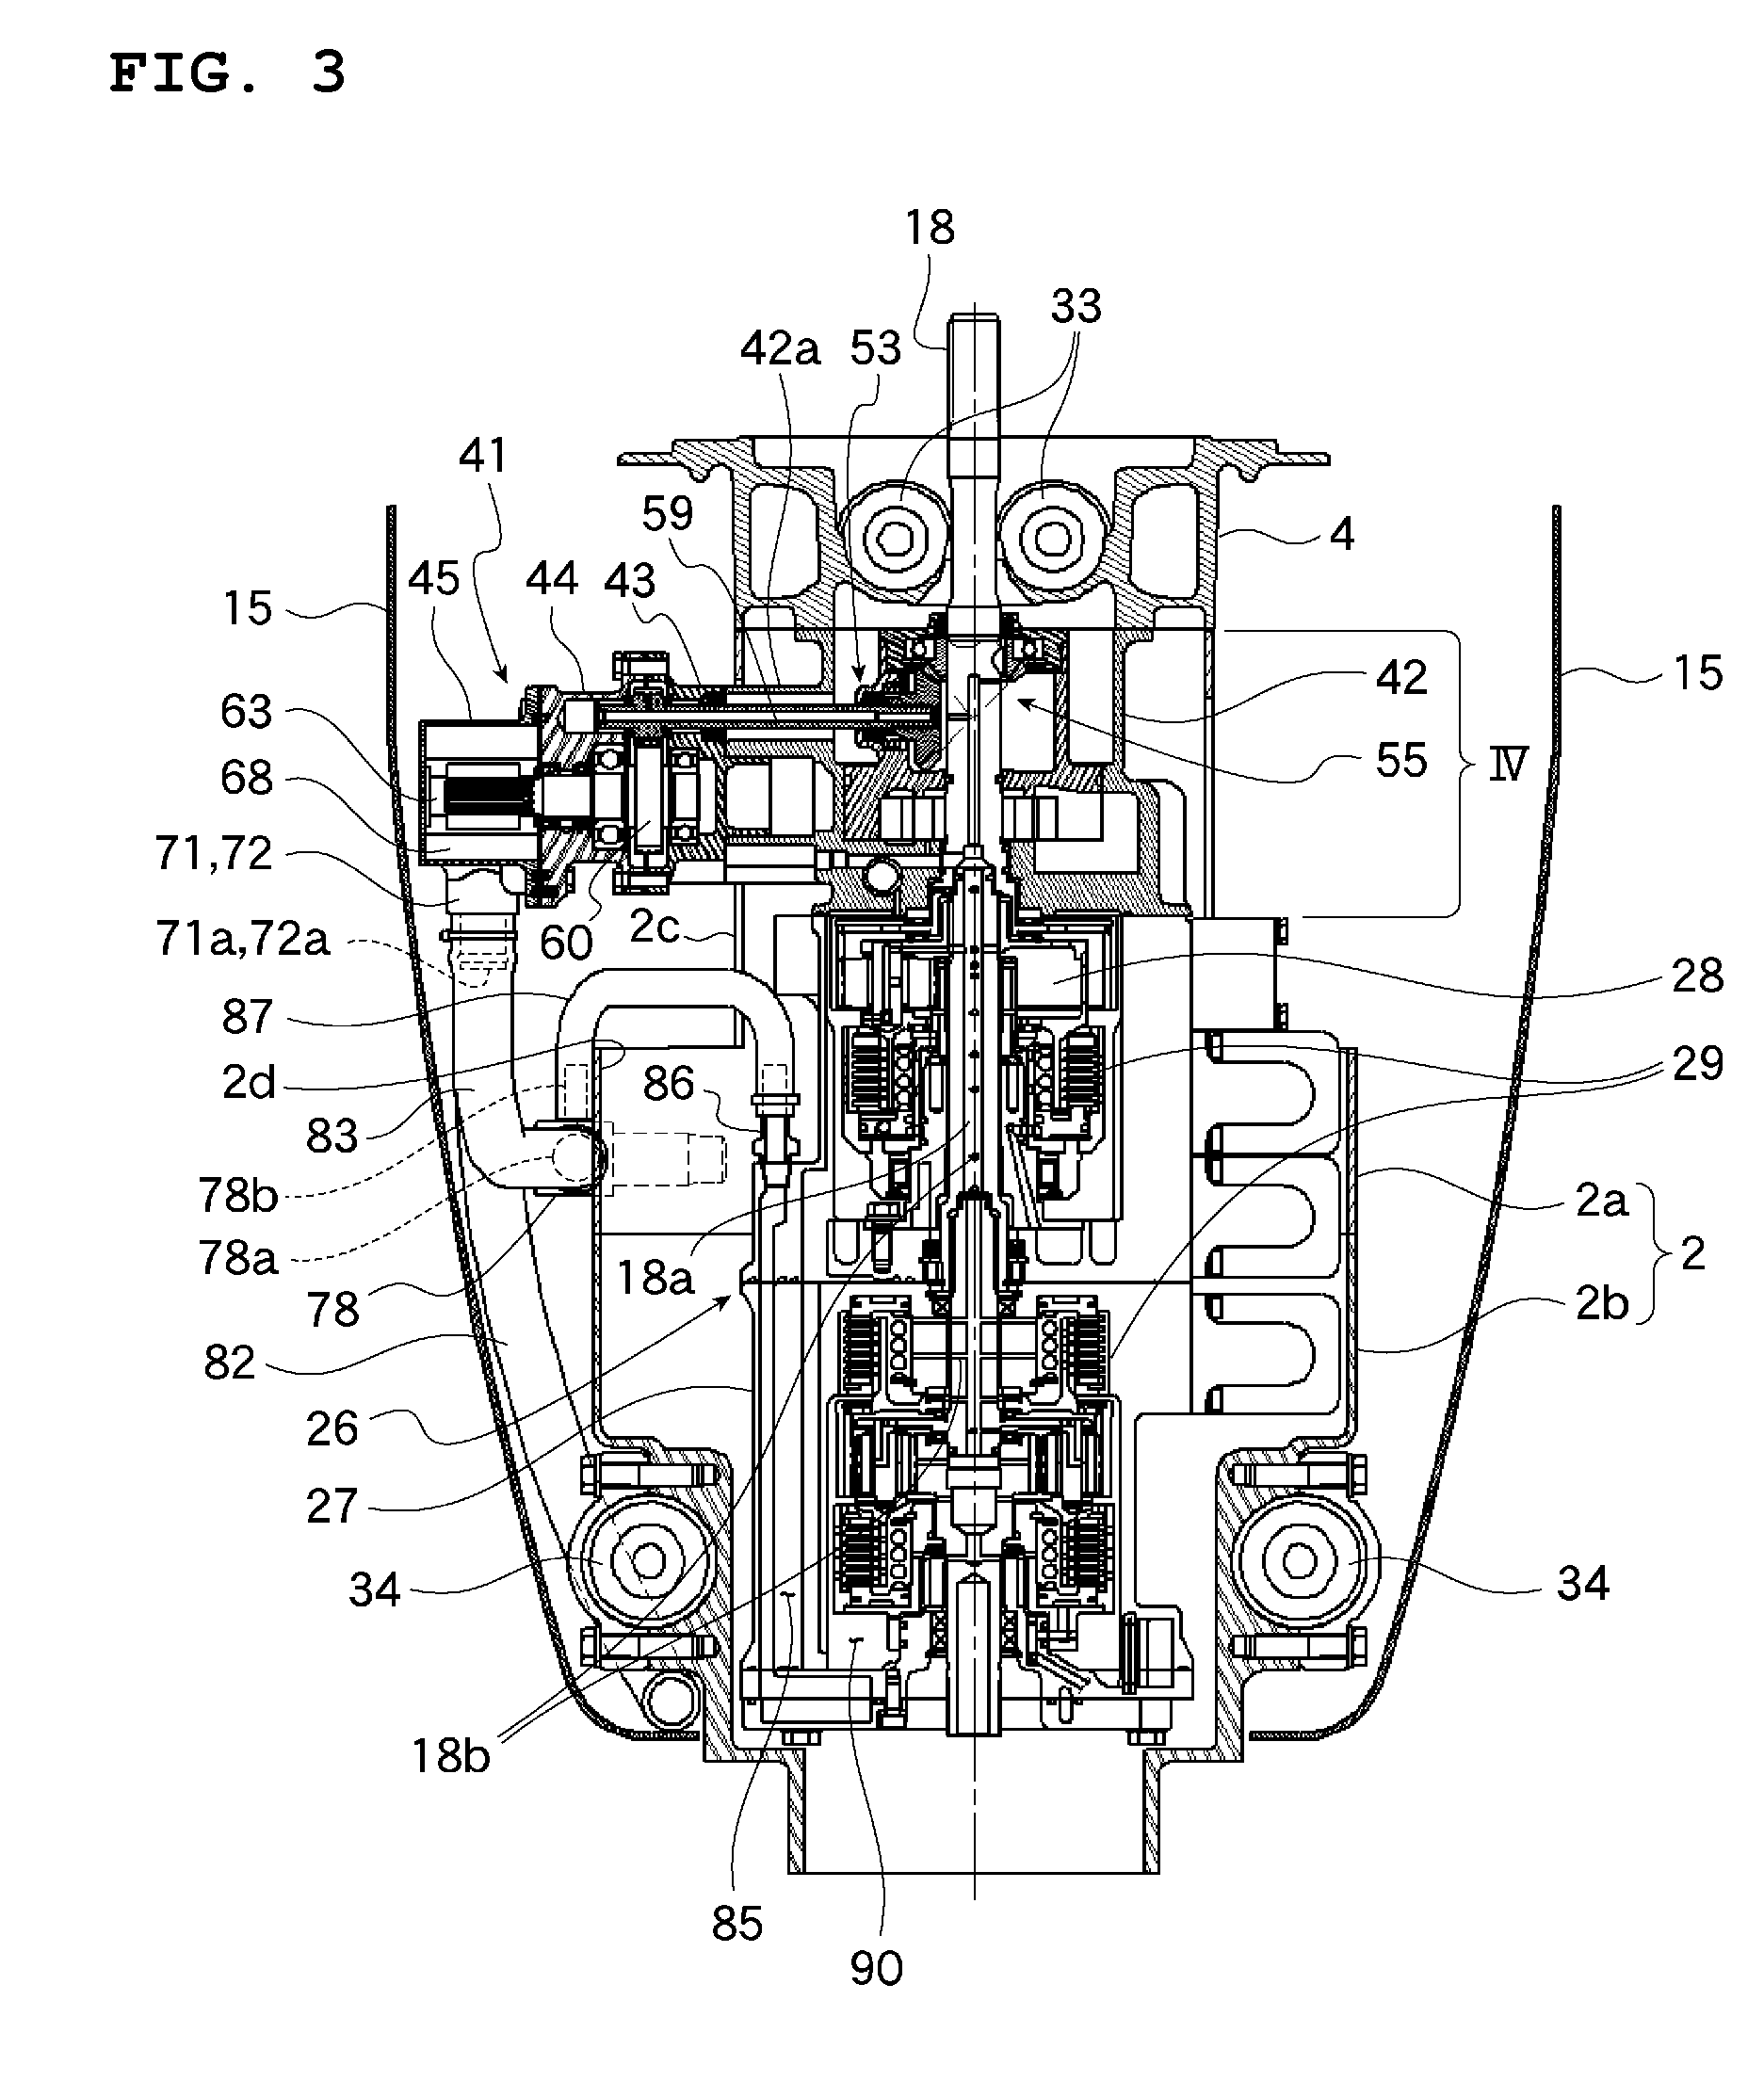 patent us20090163094 outboard motor google patentsMarine Transmission Diagrams As Well As Patent Us8715022 Marine Vessel #6